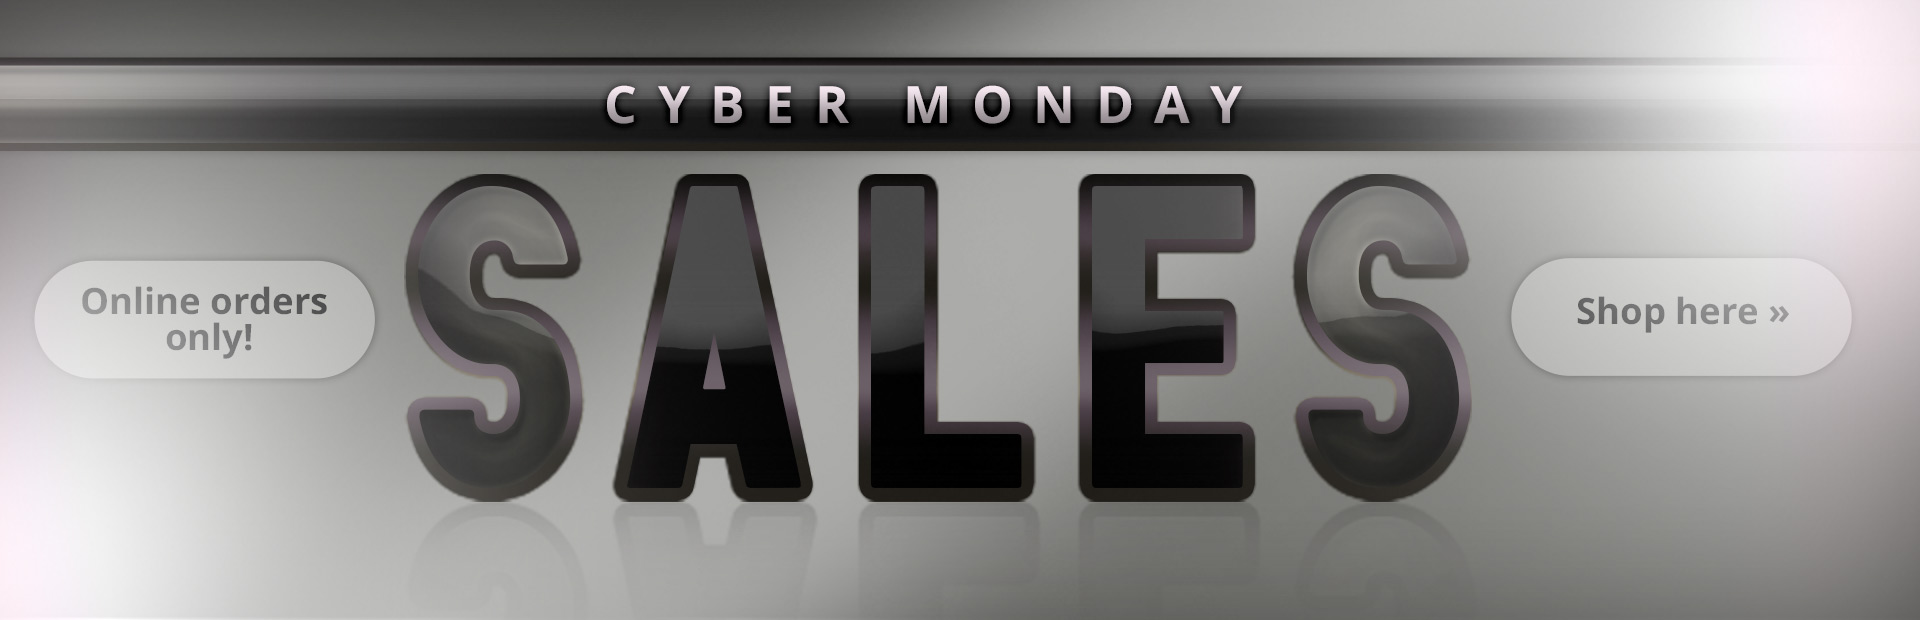 Click here to shop for Cyber Monday Sales offered only on online orders.